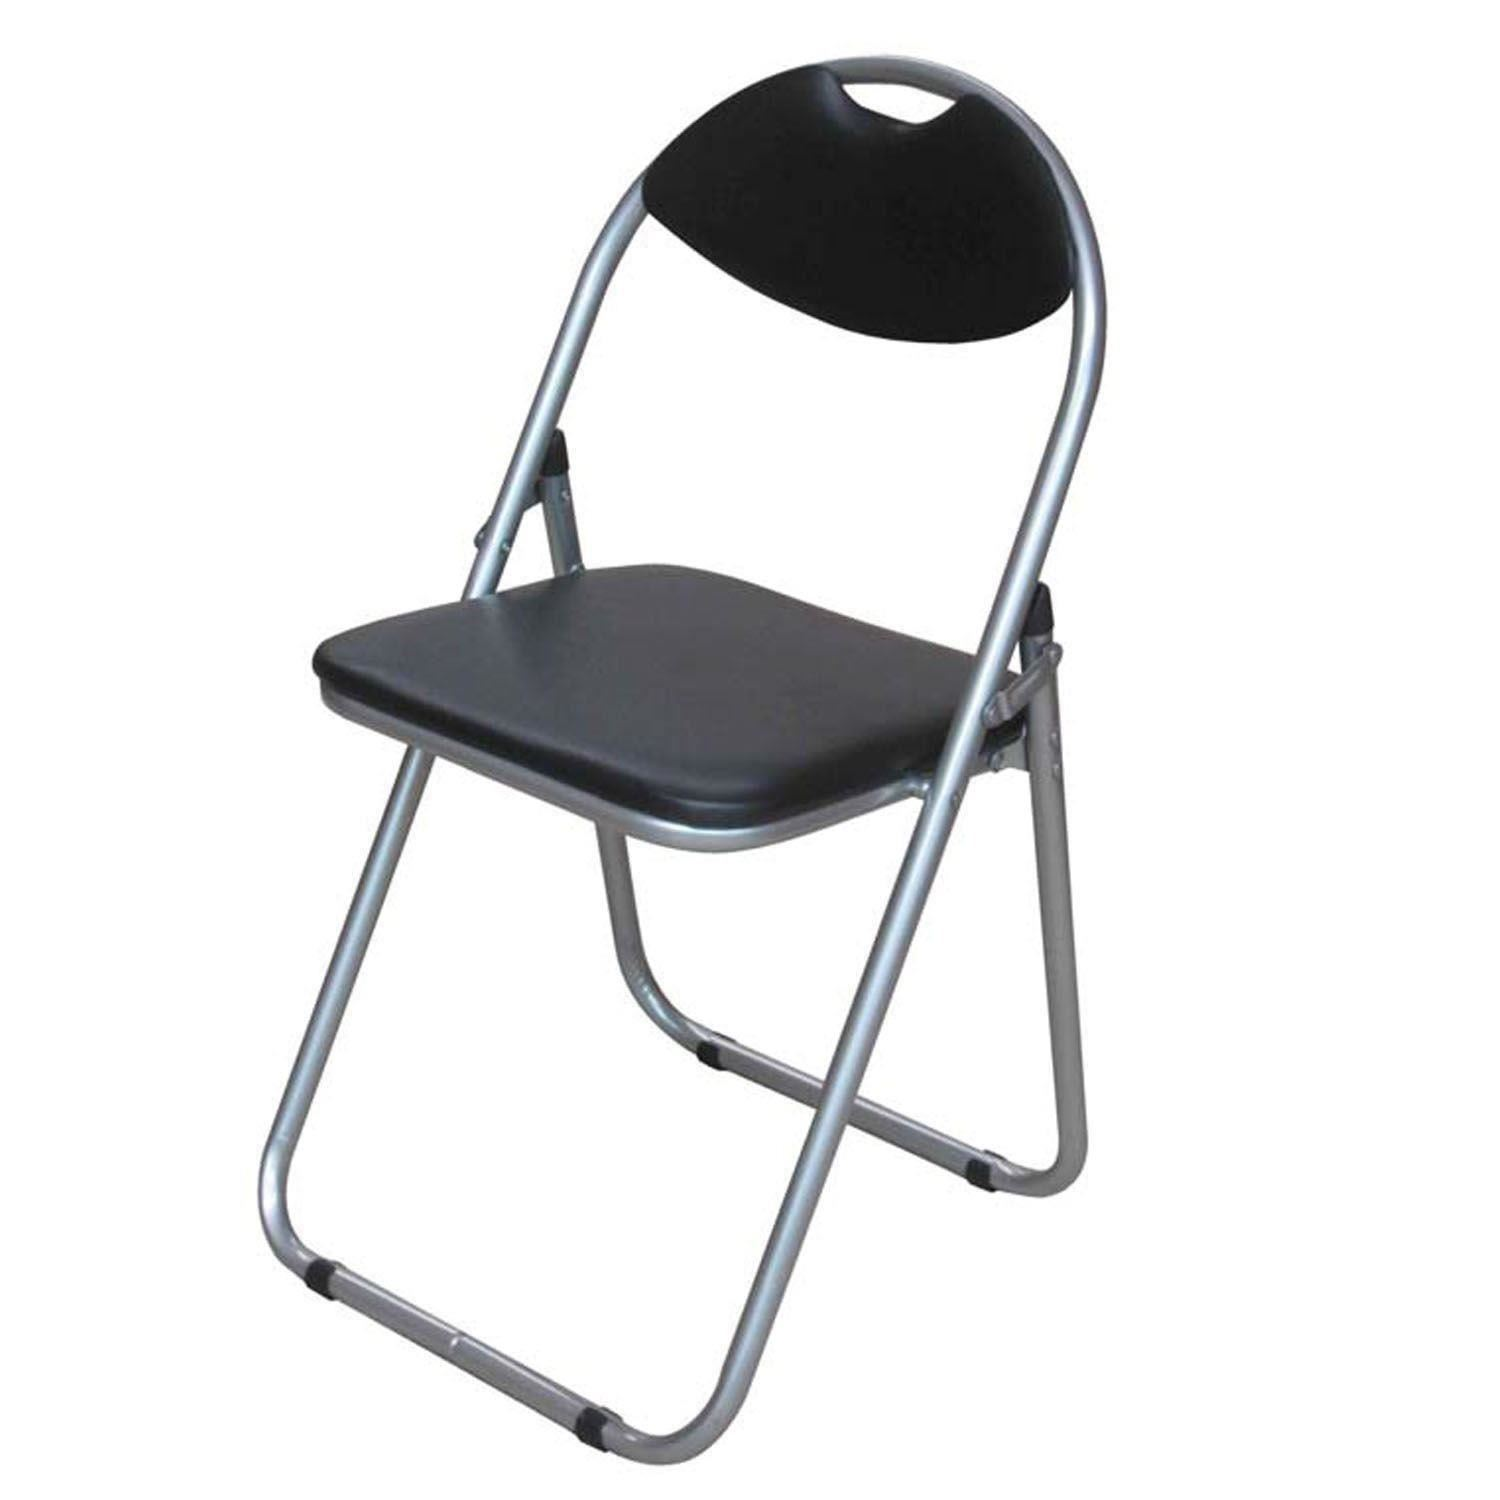 BLACK FAUX LEATHER PADDED FOLDING CHAIR SEAT & BACK REST HOME